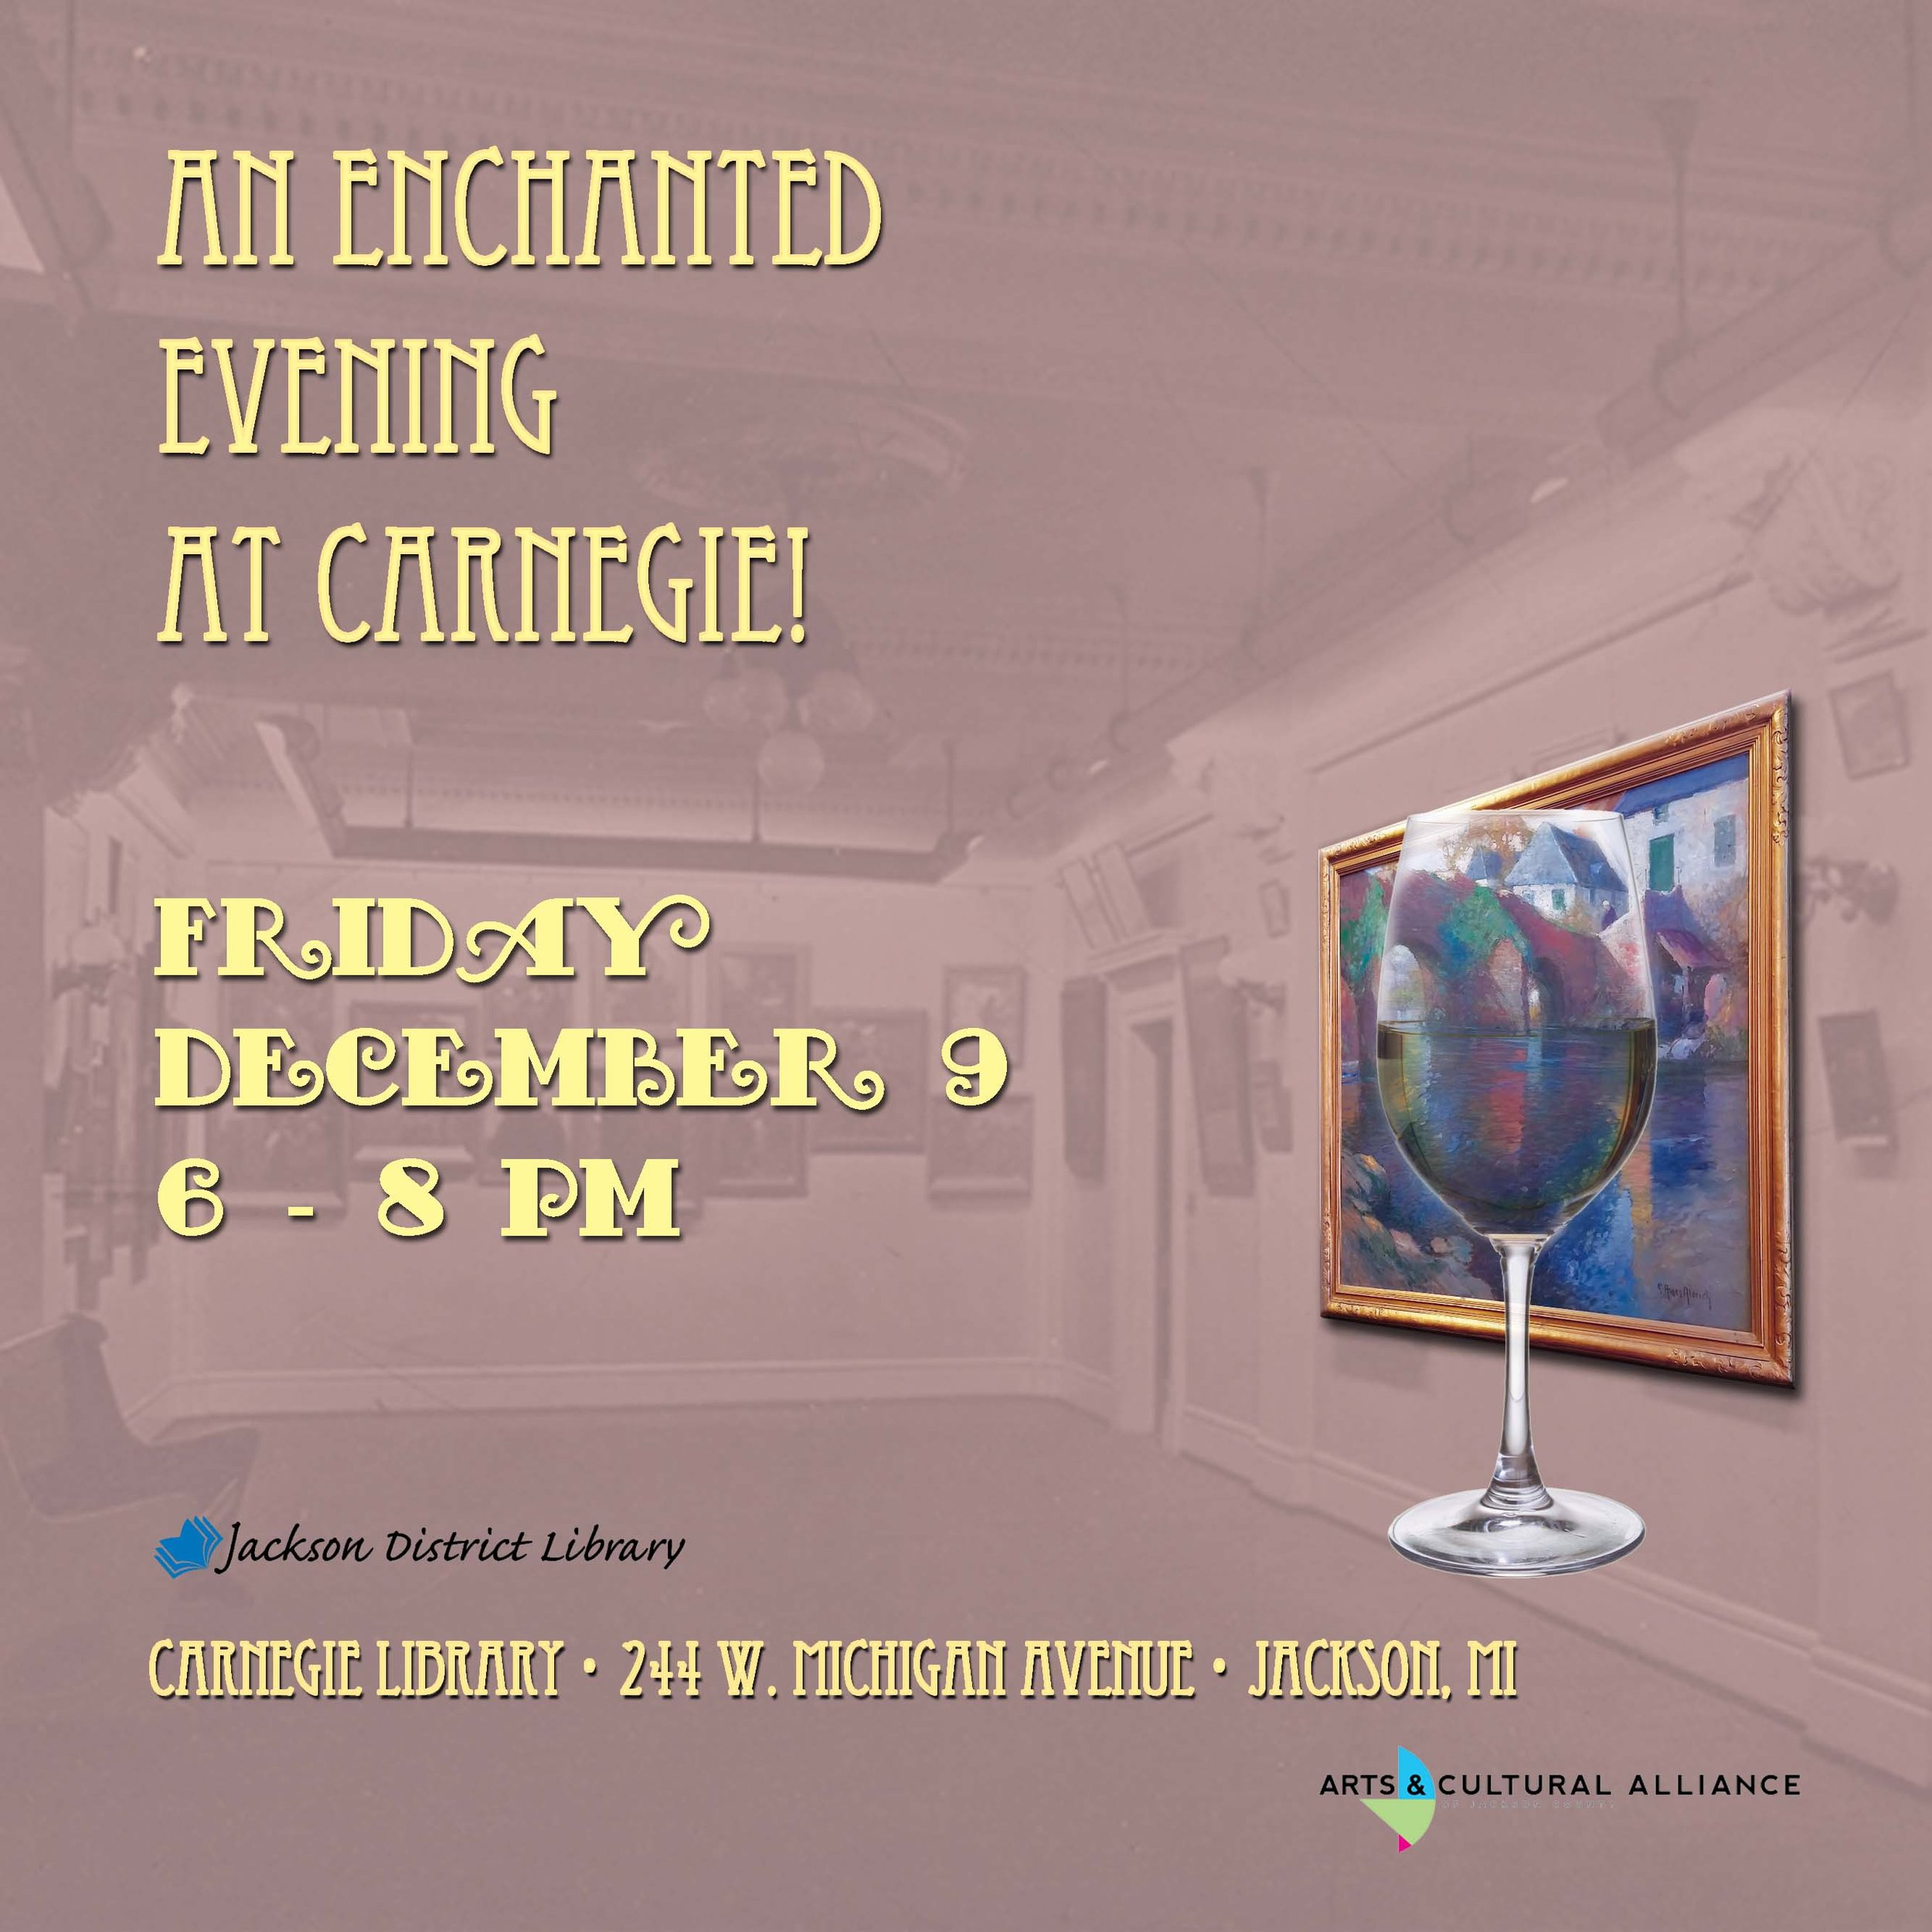 An Enchanted Evening at Carnegie